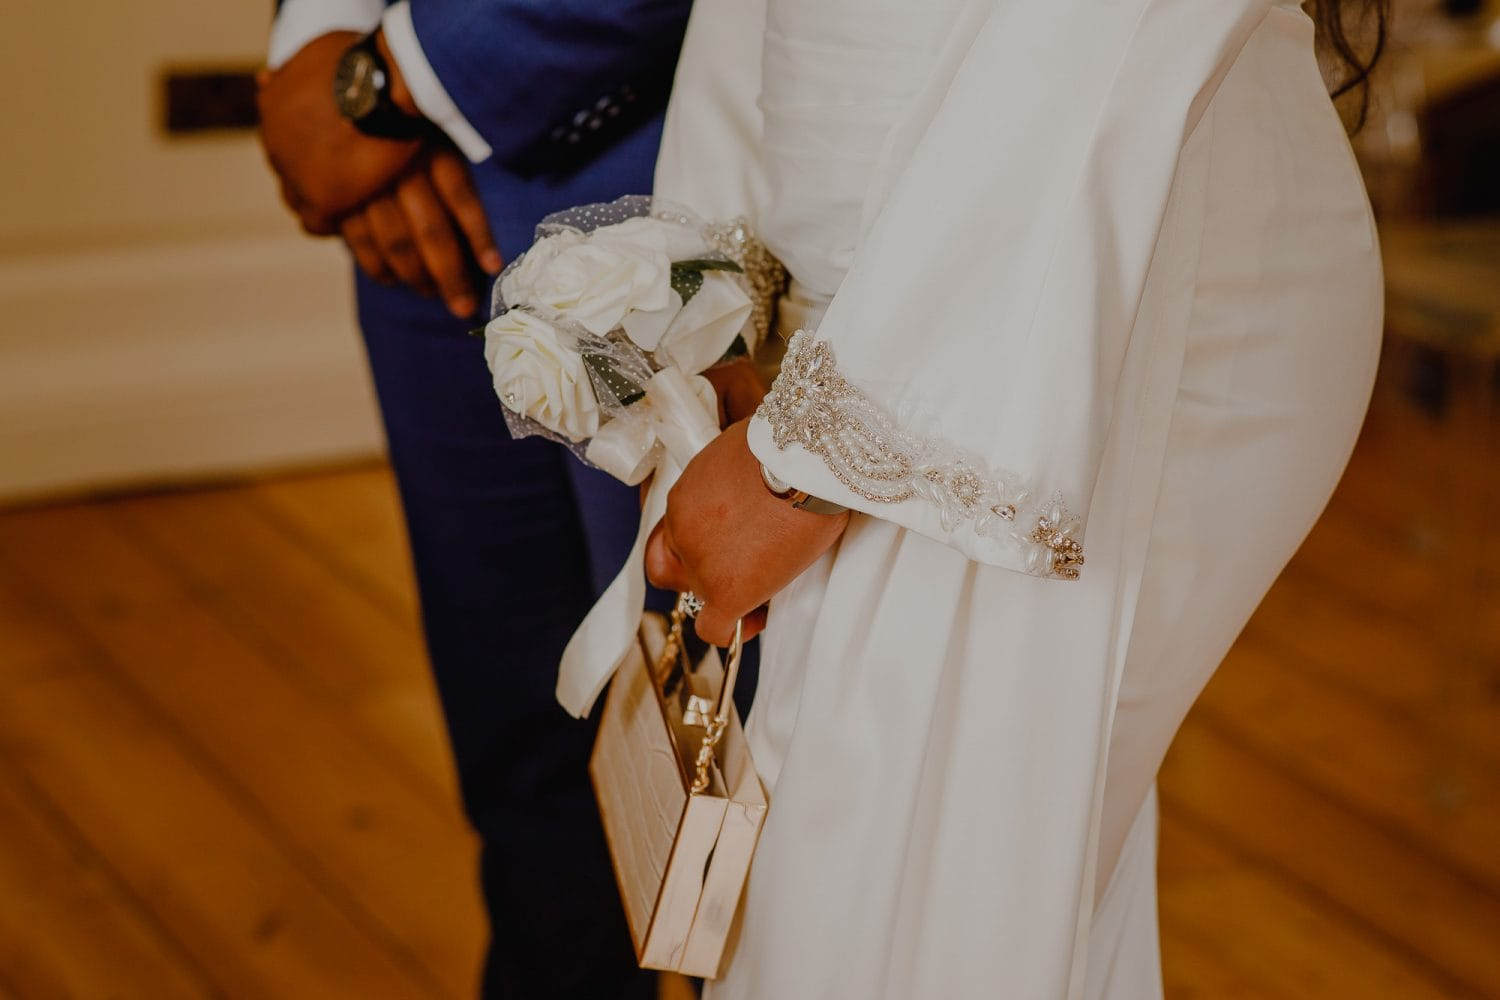 Bride holds her wedding bad and bouquet.